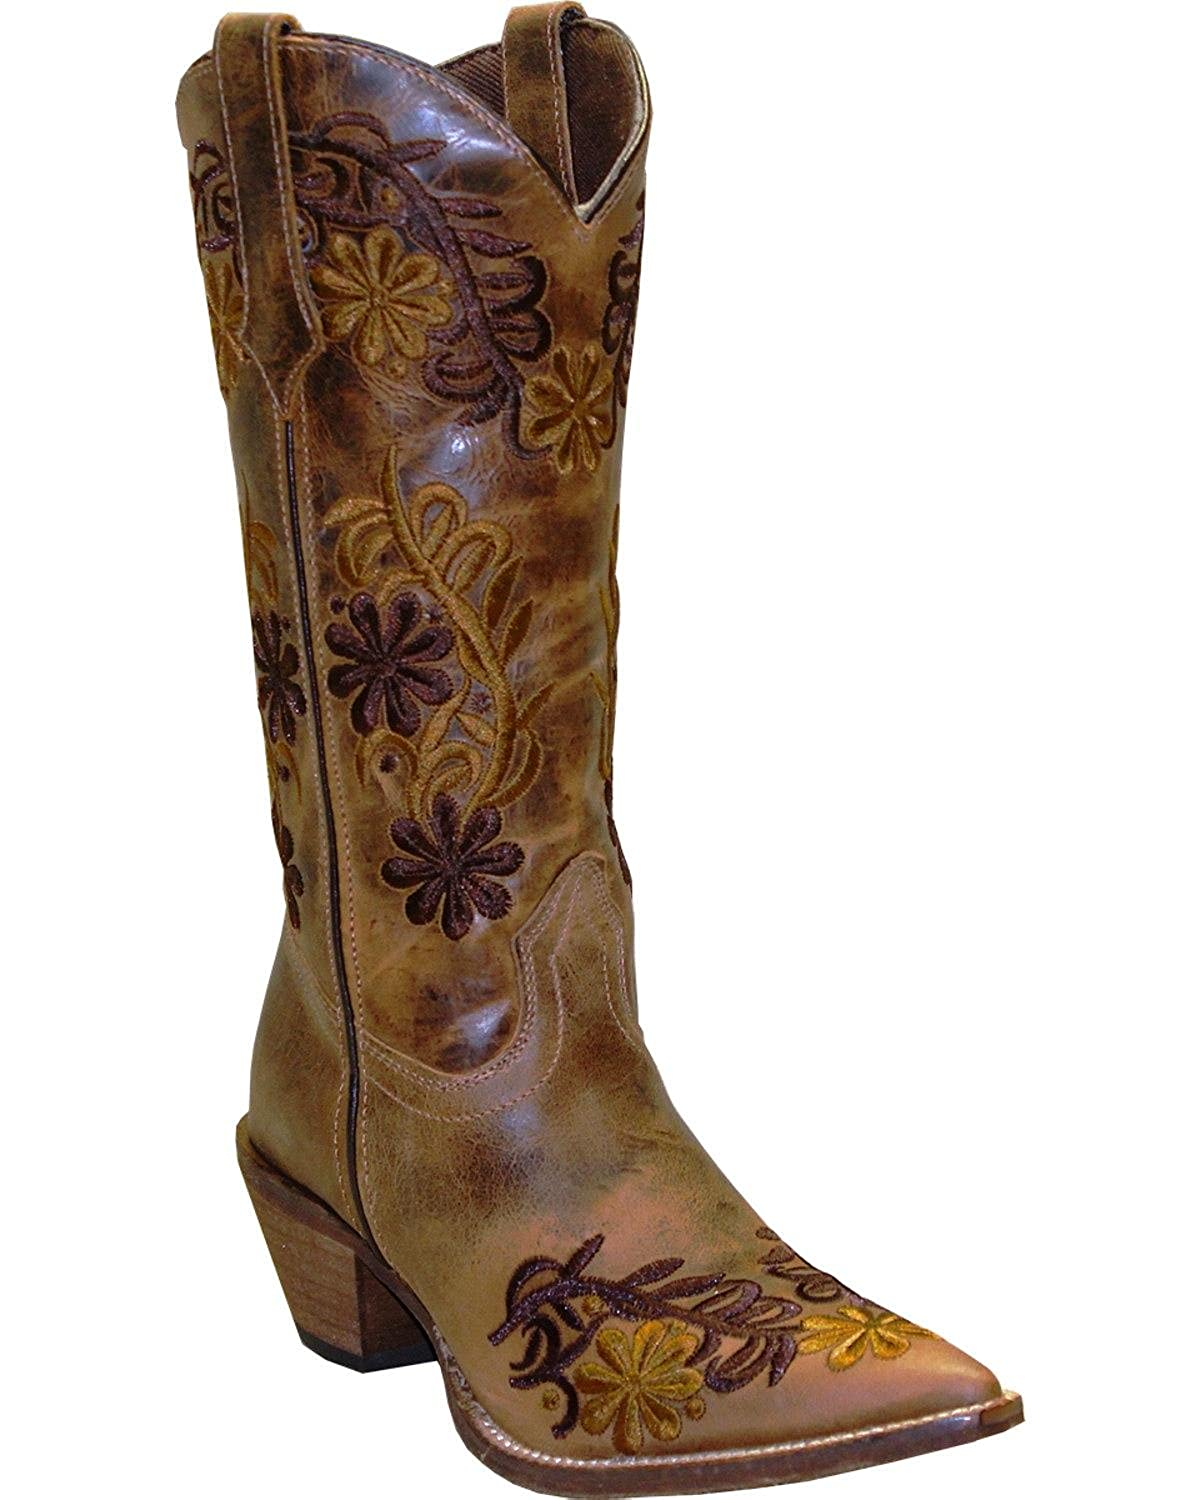 be5e97ea188 Abilene Women's Rawhide by Boot Floral Cowgirl Pointed Toe